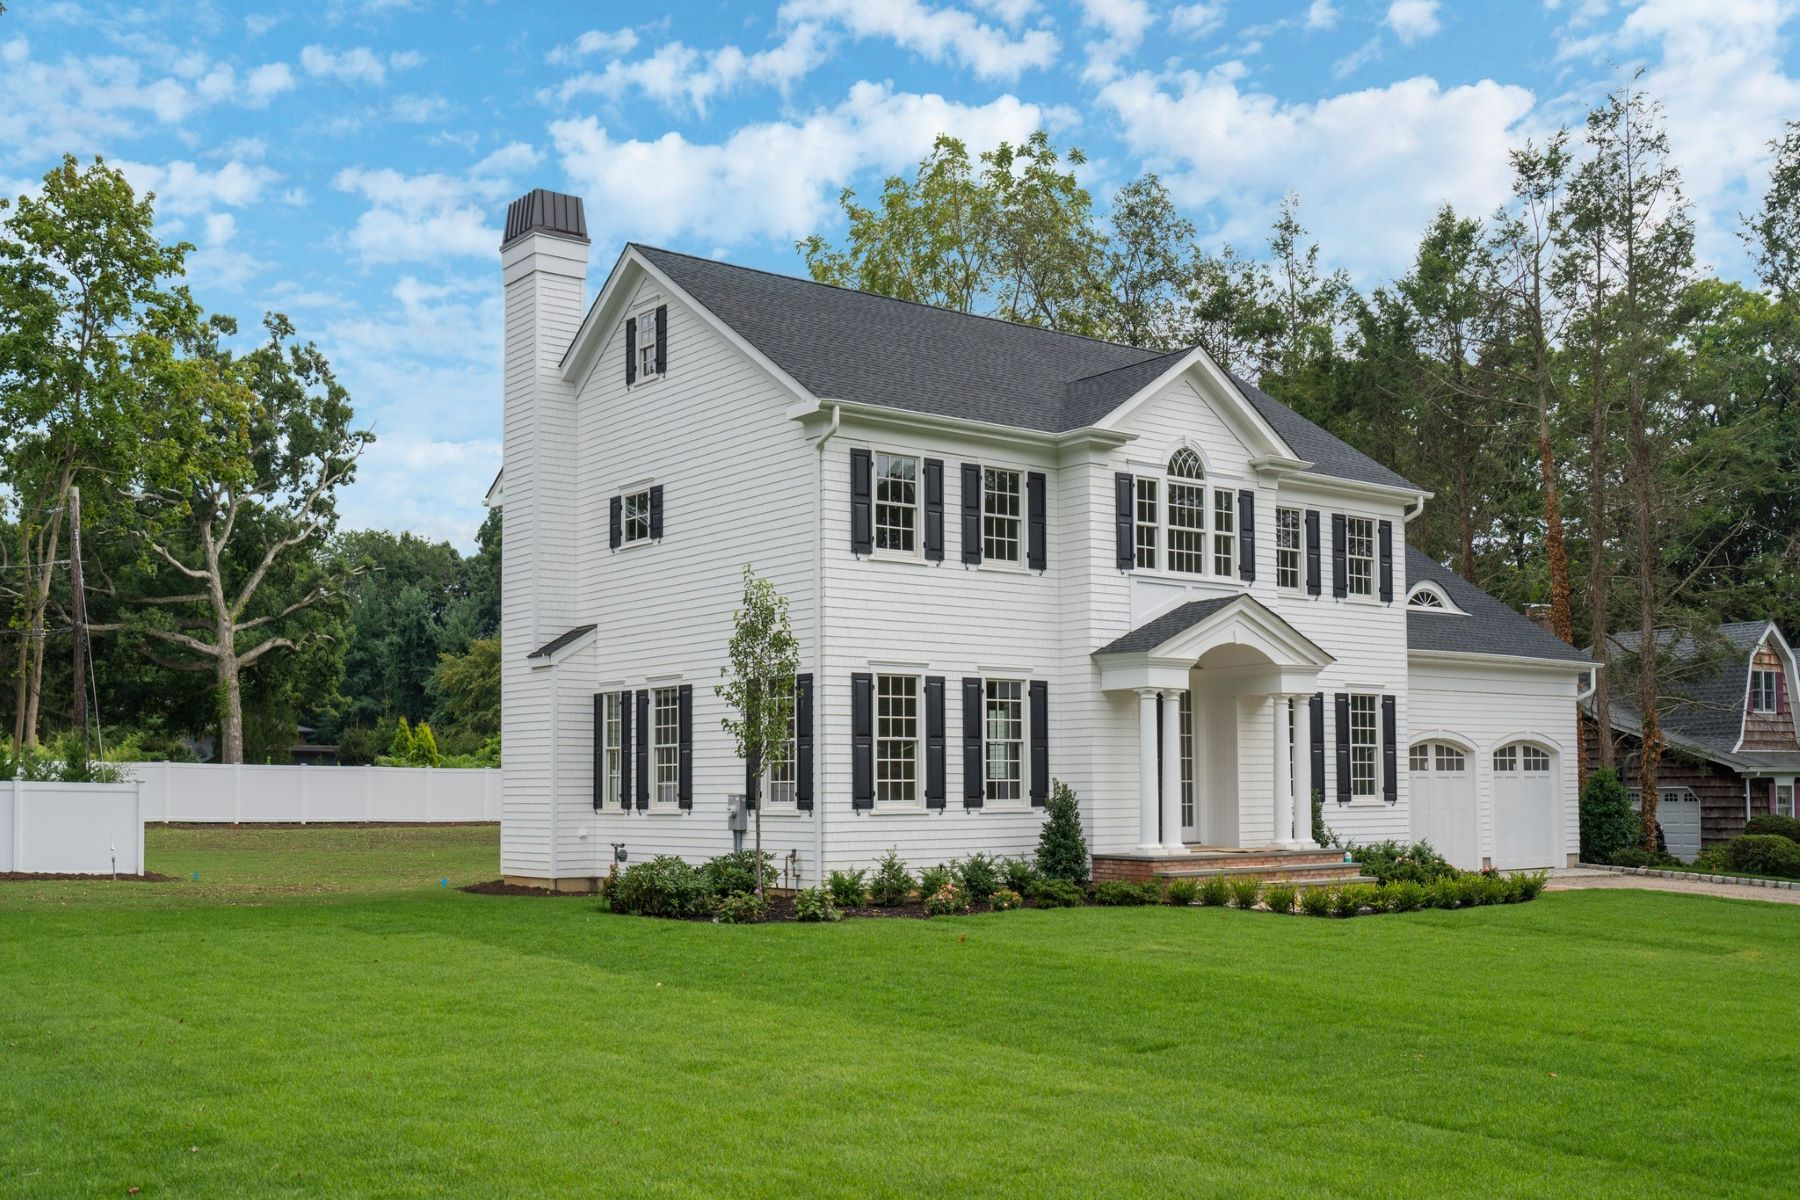 Single Family Homes for Sale at Cold Spring Hrbr 4 Meadowfarm Ln Cold Spring Harbor, New York 11724 United States